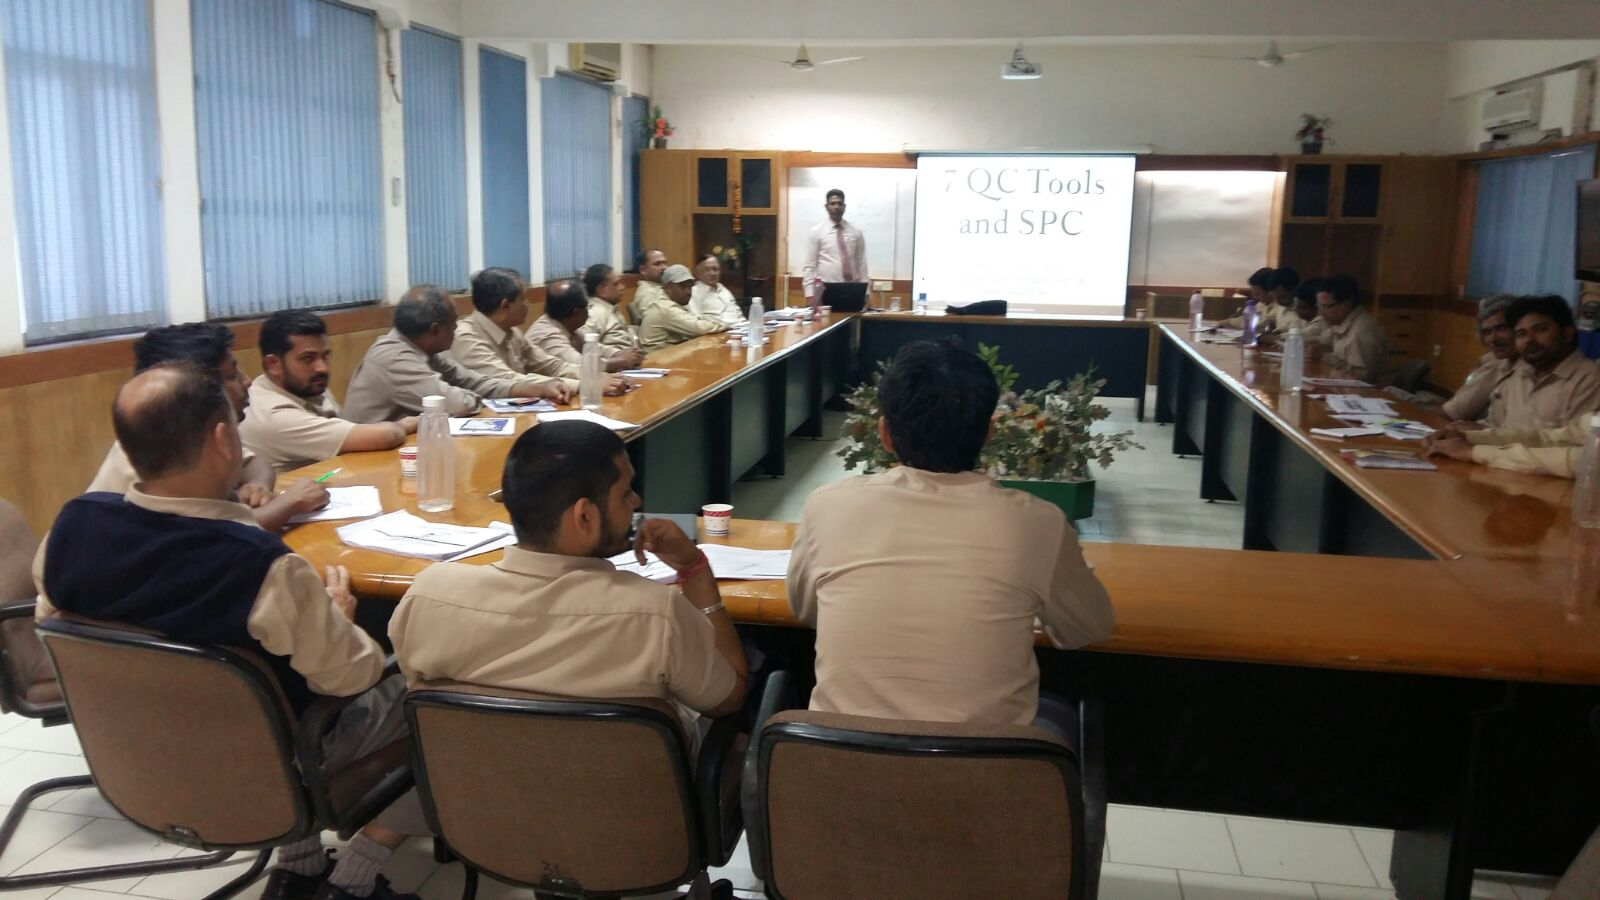 7 QC Tools and SPC Training workshop at Roca Bathroom Products Pvt. Ltd,